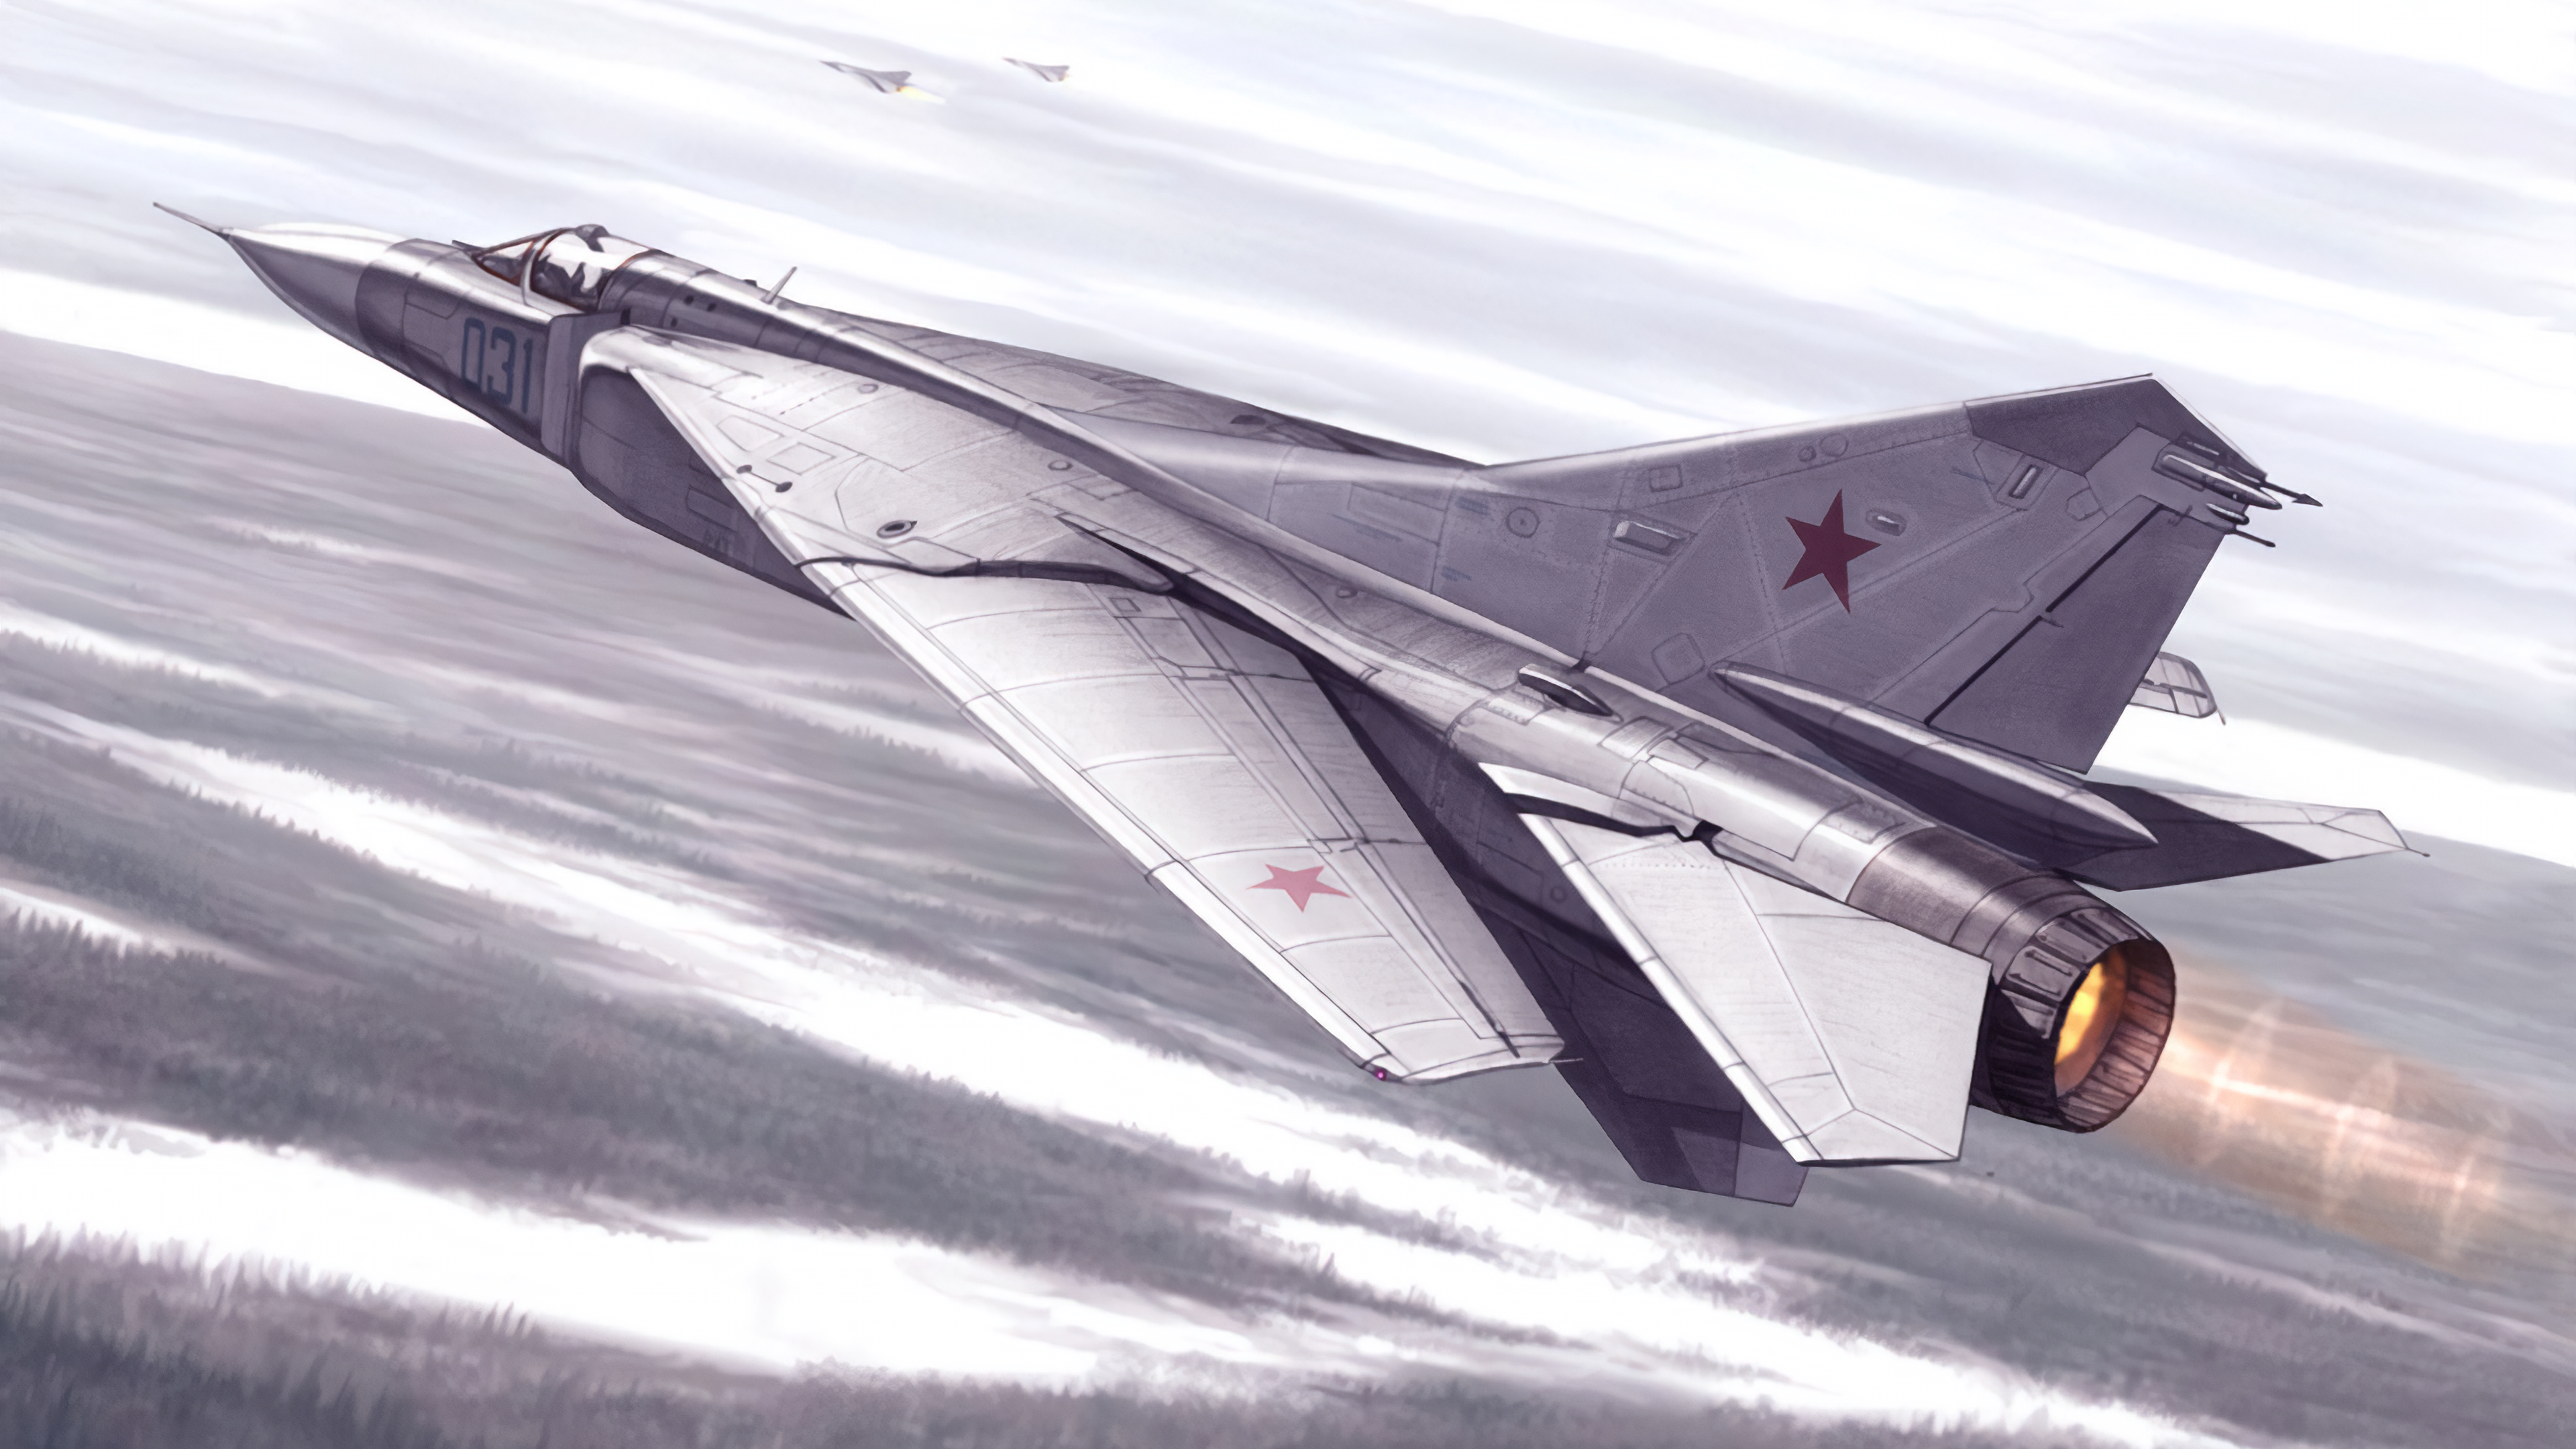 Mikoyan Gurevich Mig 23 4k Ultra Hd Wallpaper Background Image Images, Photos, Reviews